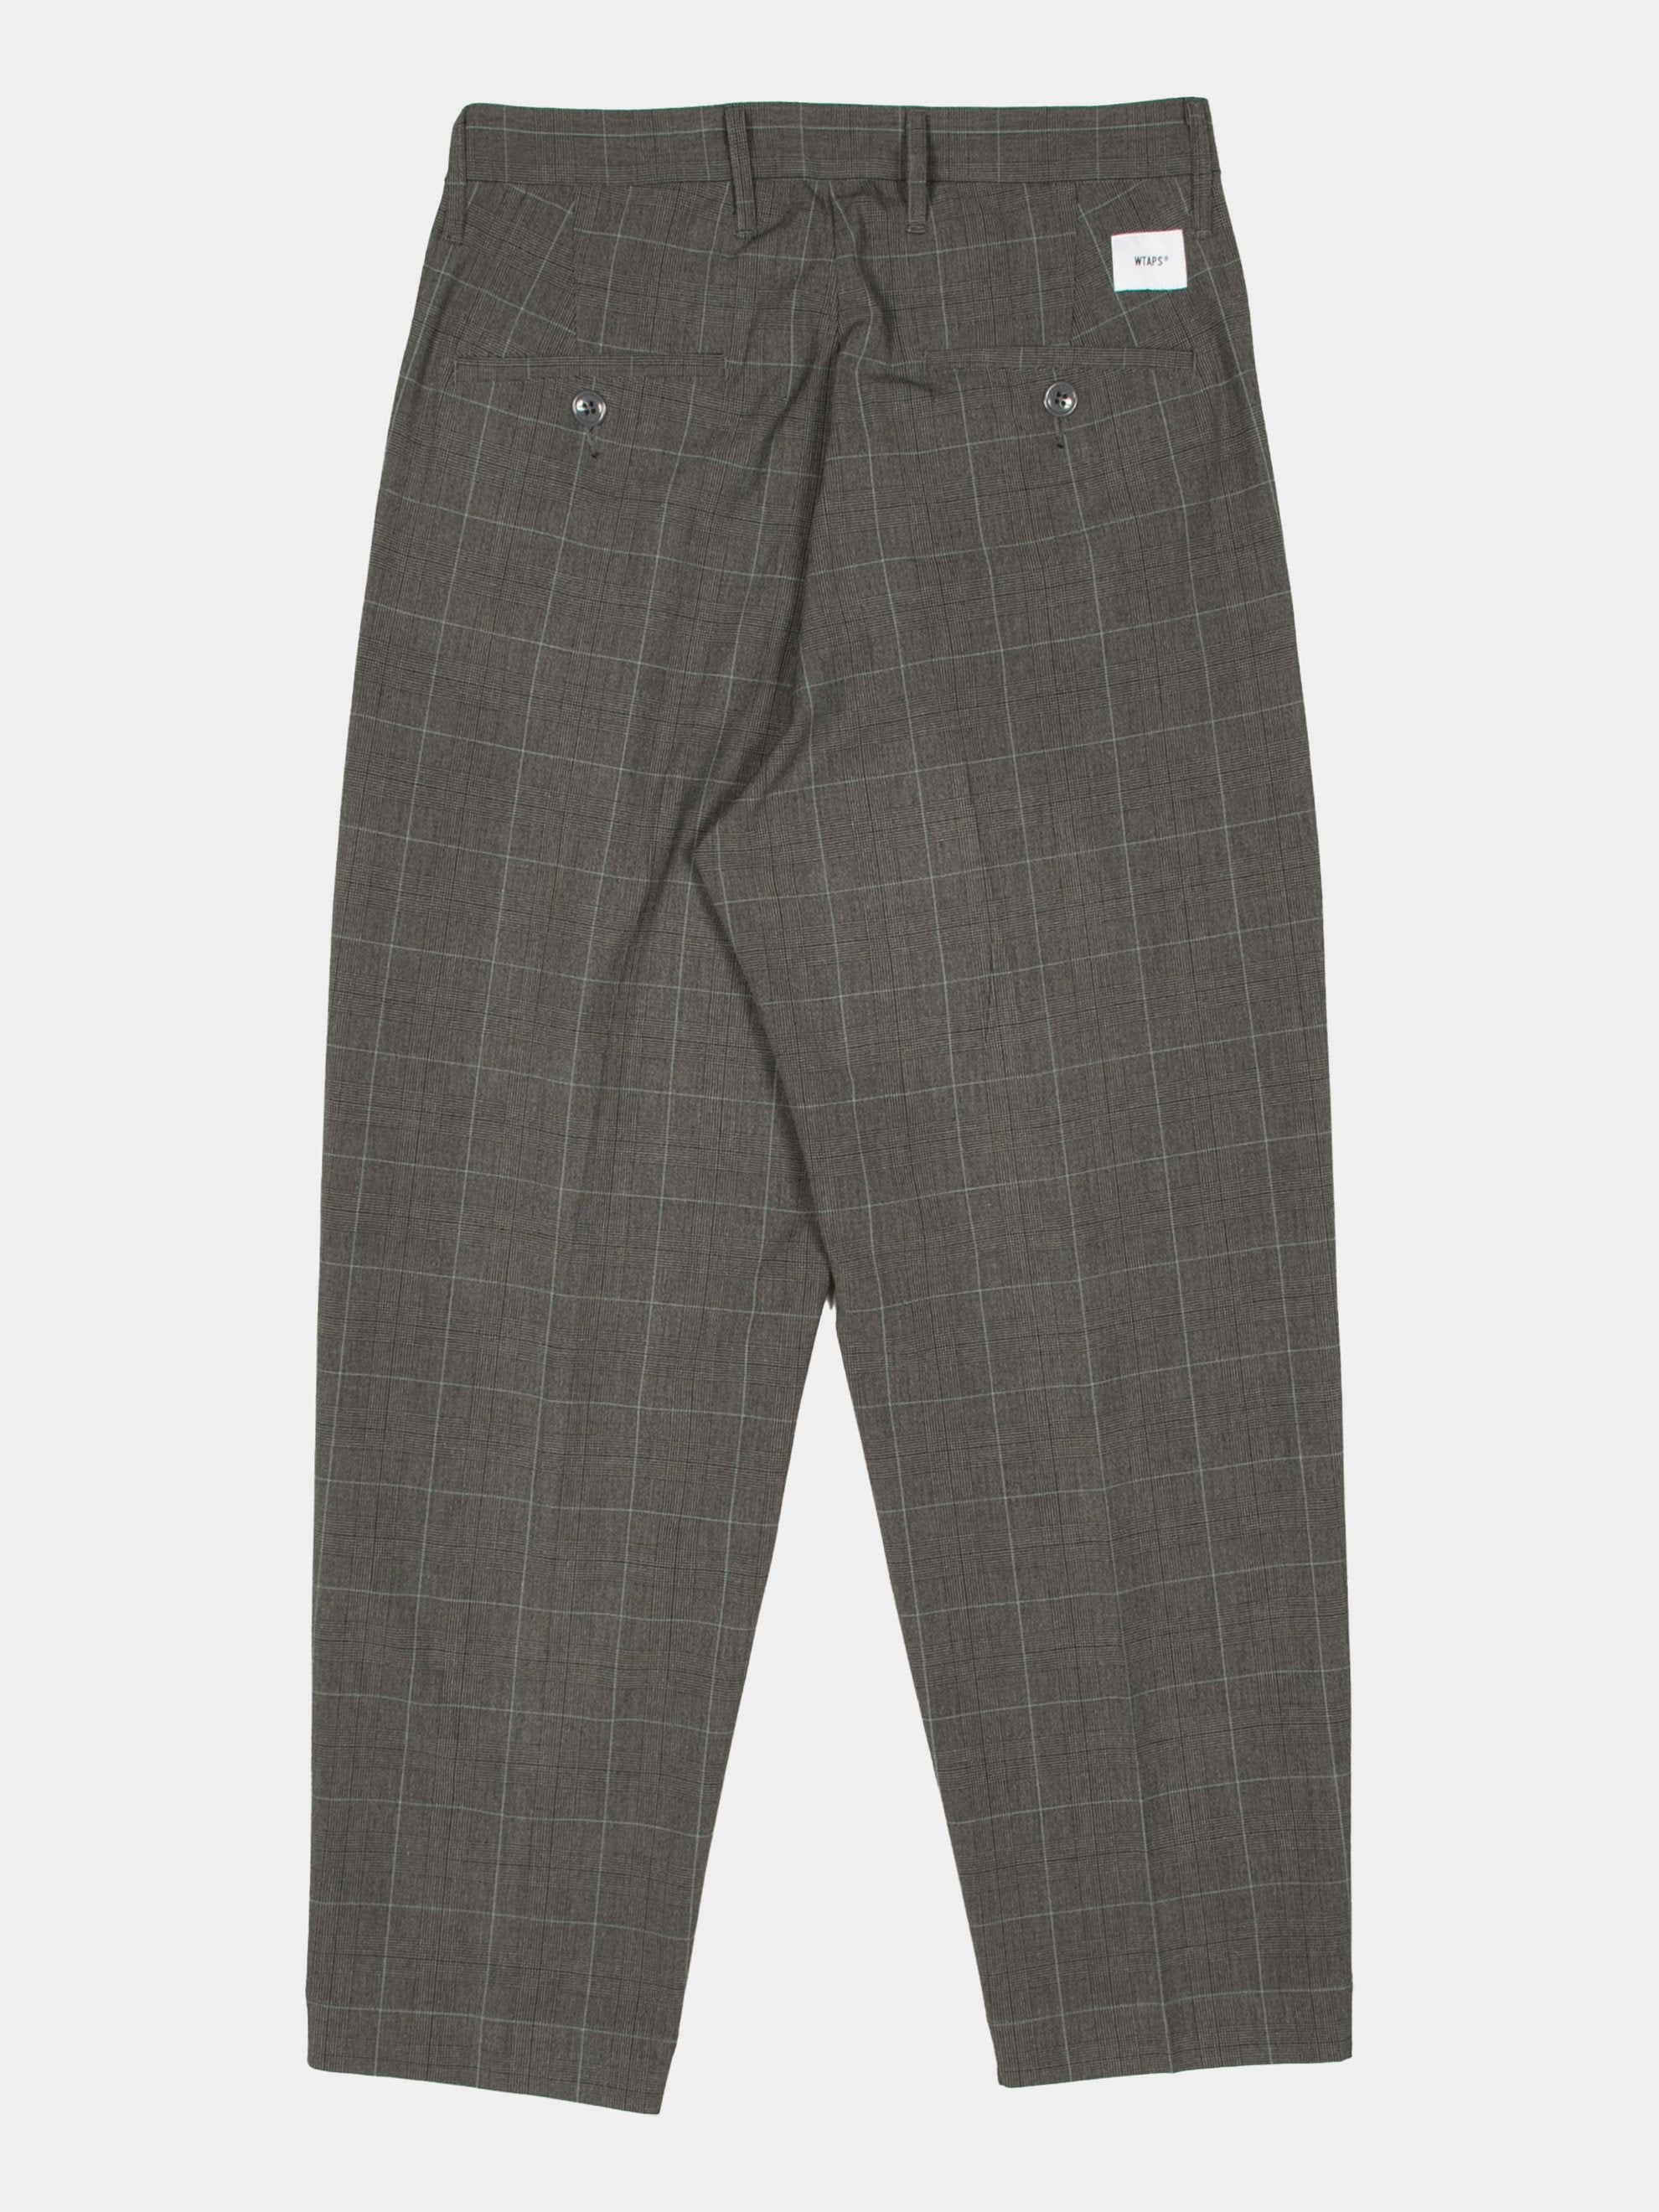 Tuck / Trousers Rapo Weather Textile